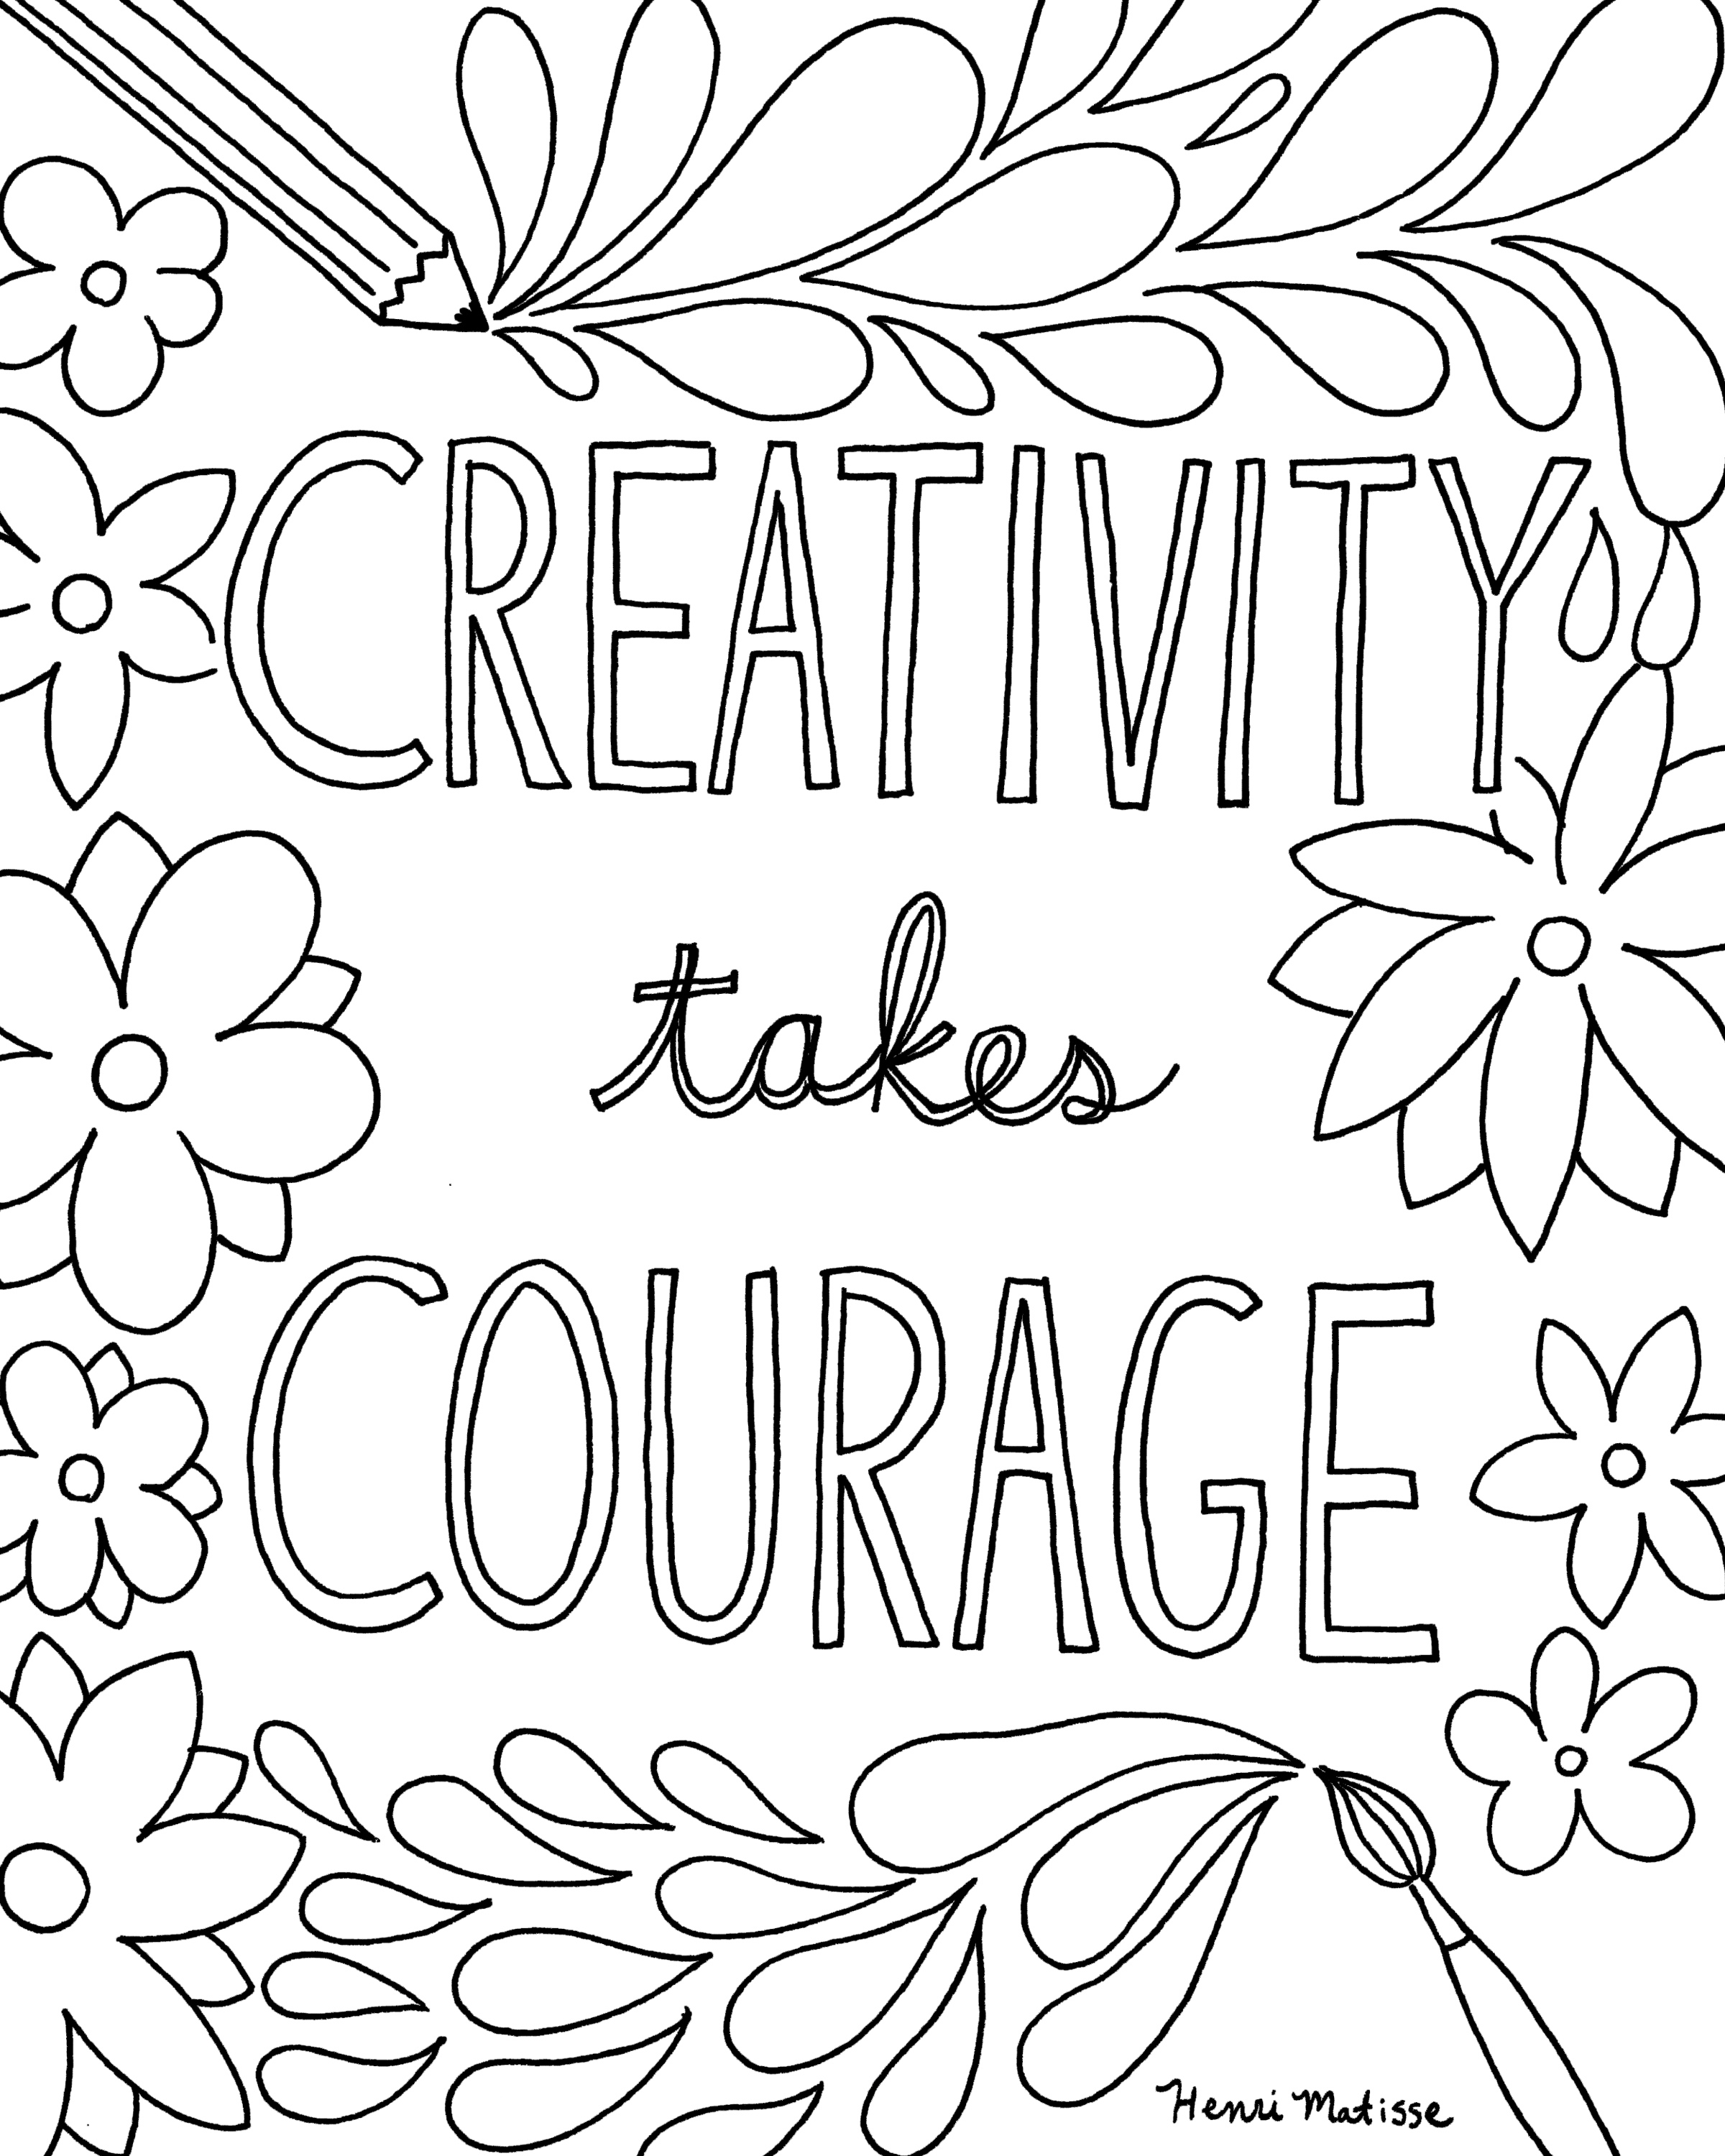 positive quotes coloring sheets inspirational quotes coloring pages for adults quotes positive coloring sheets